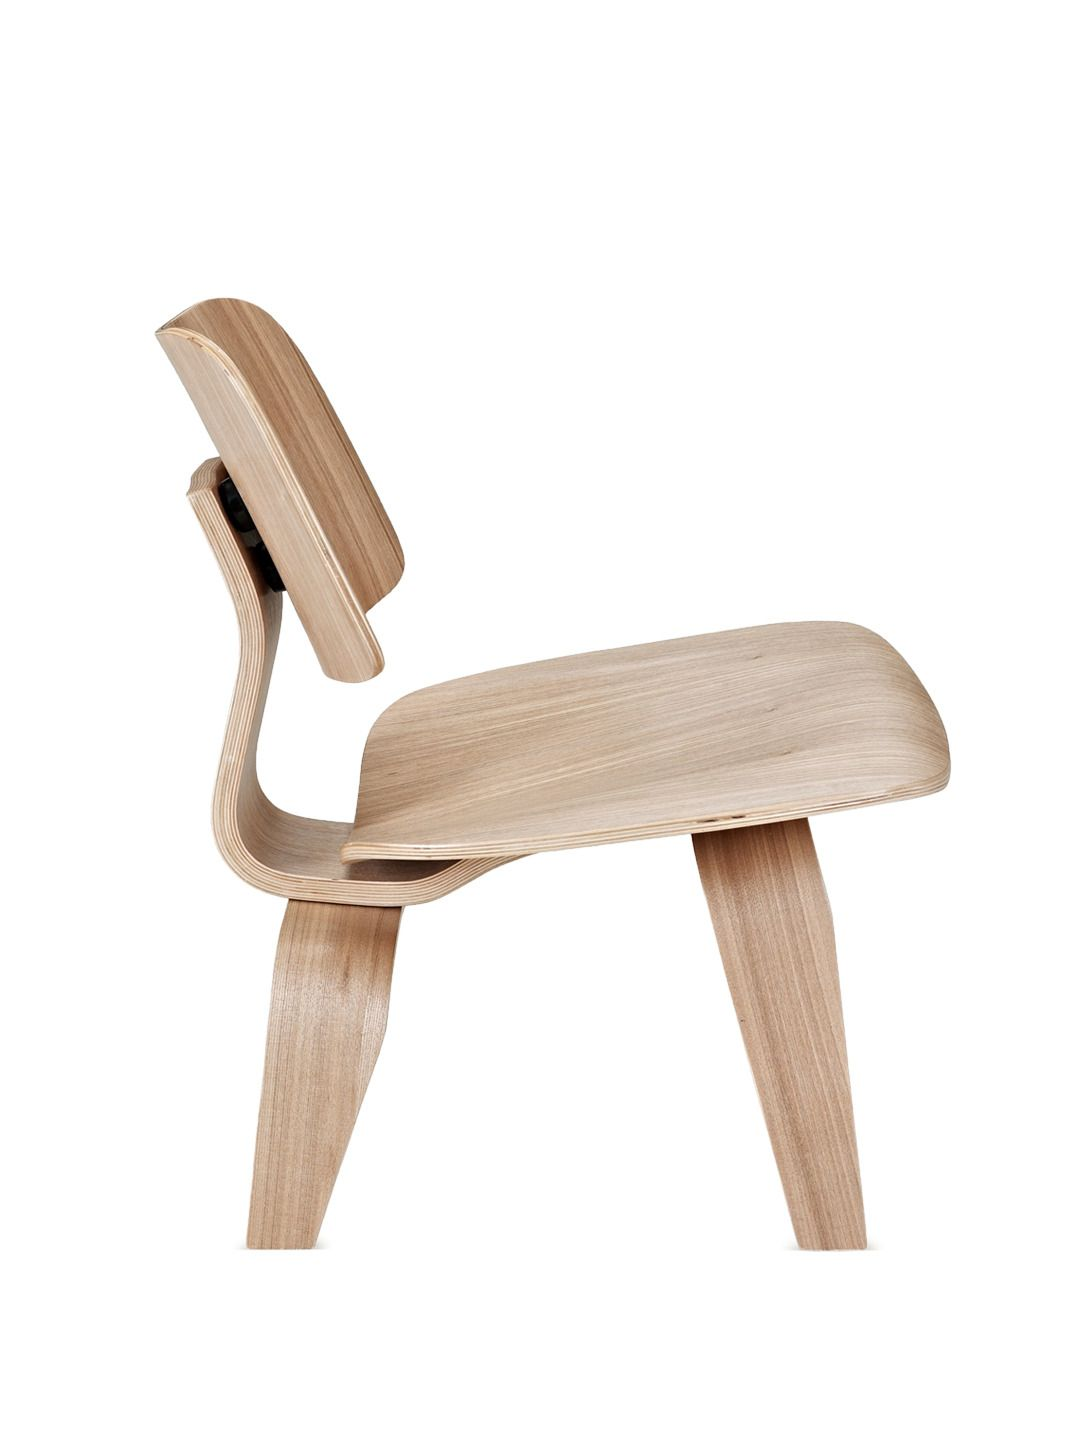 plywood lounge wood chair by pearl river modern ny at gilt  - plywood lounge wood chair by pearl river modern ny at gilt